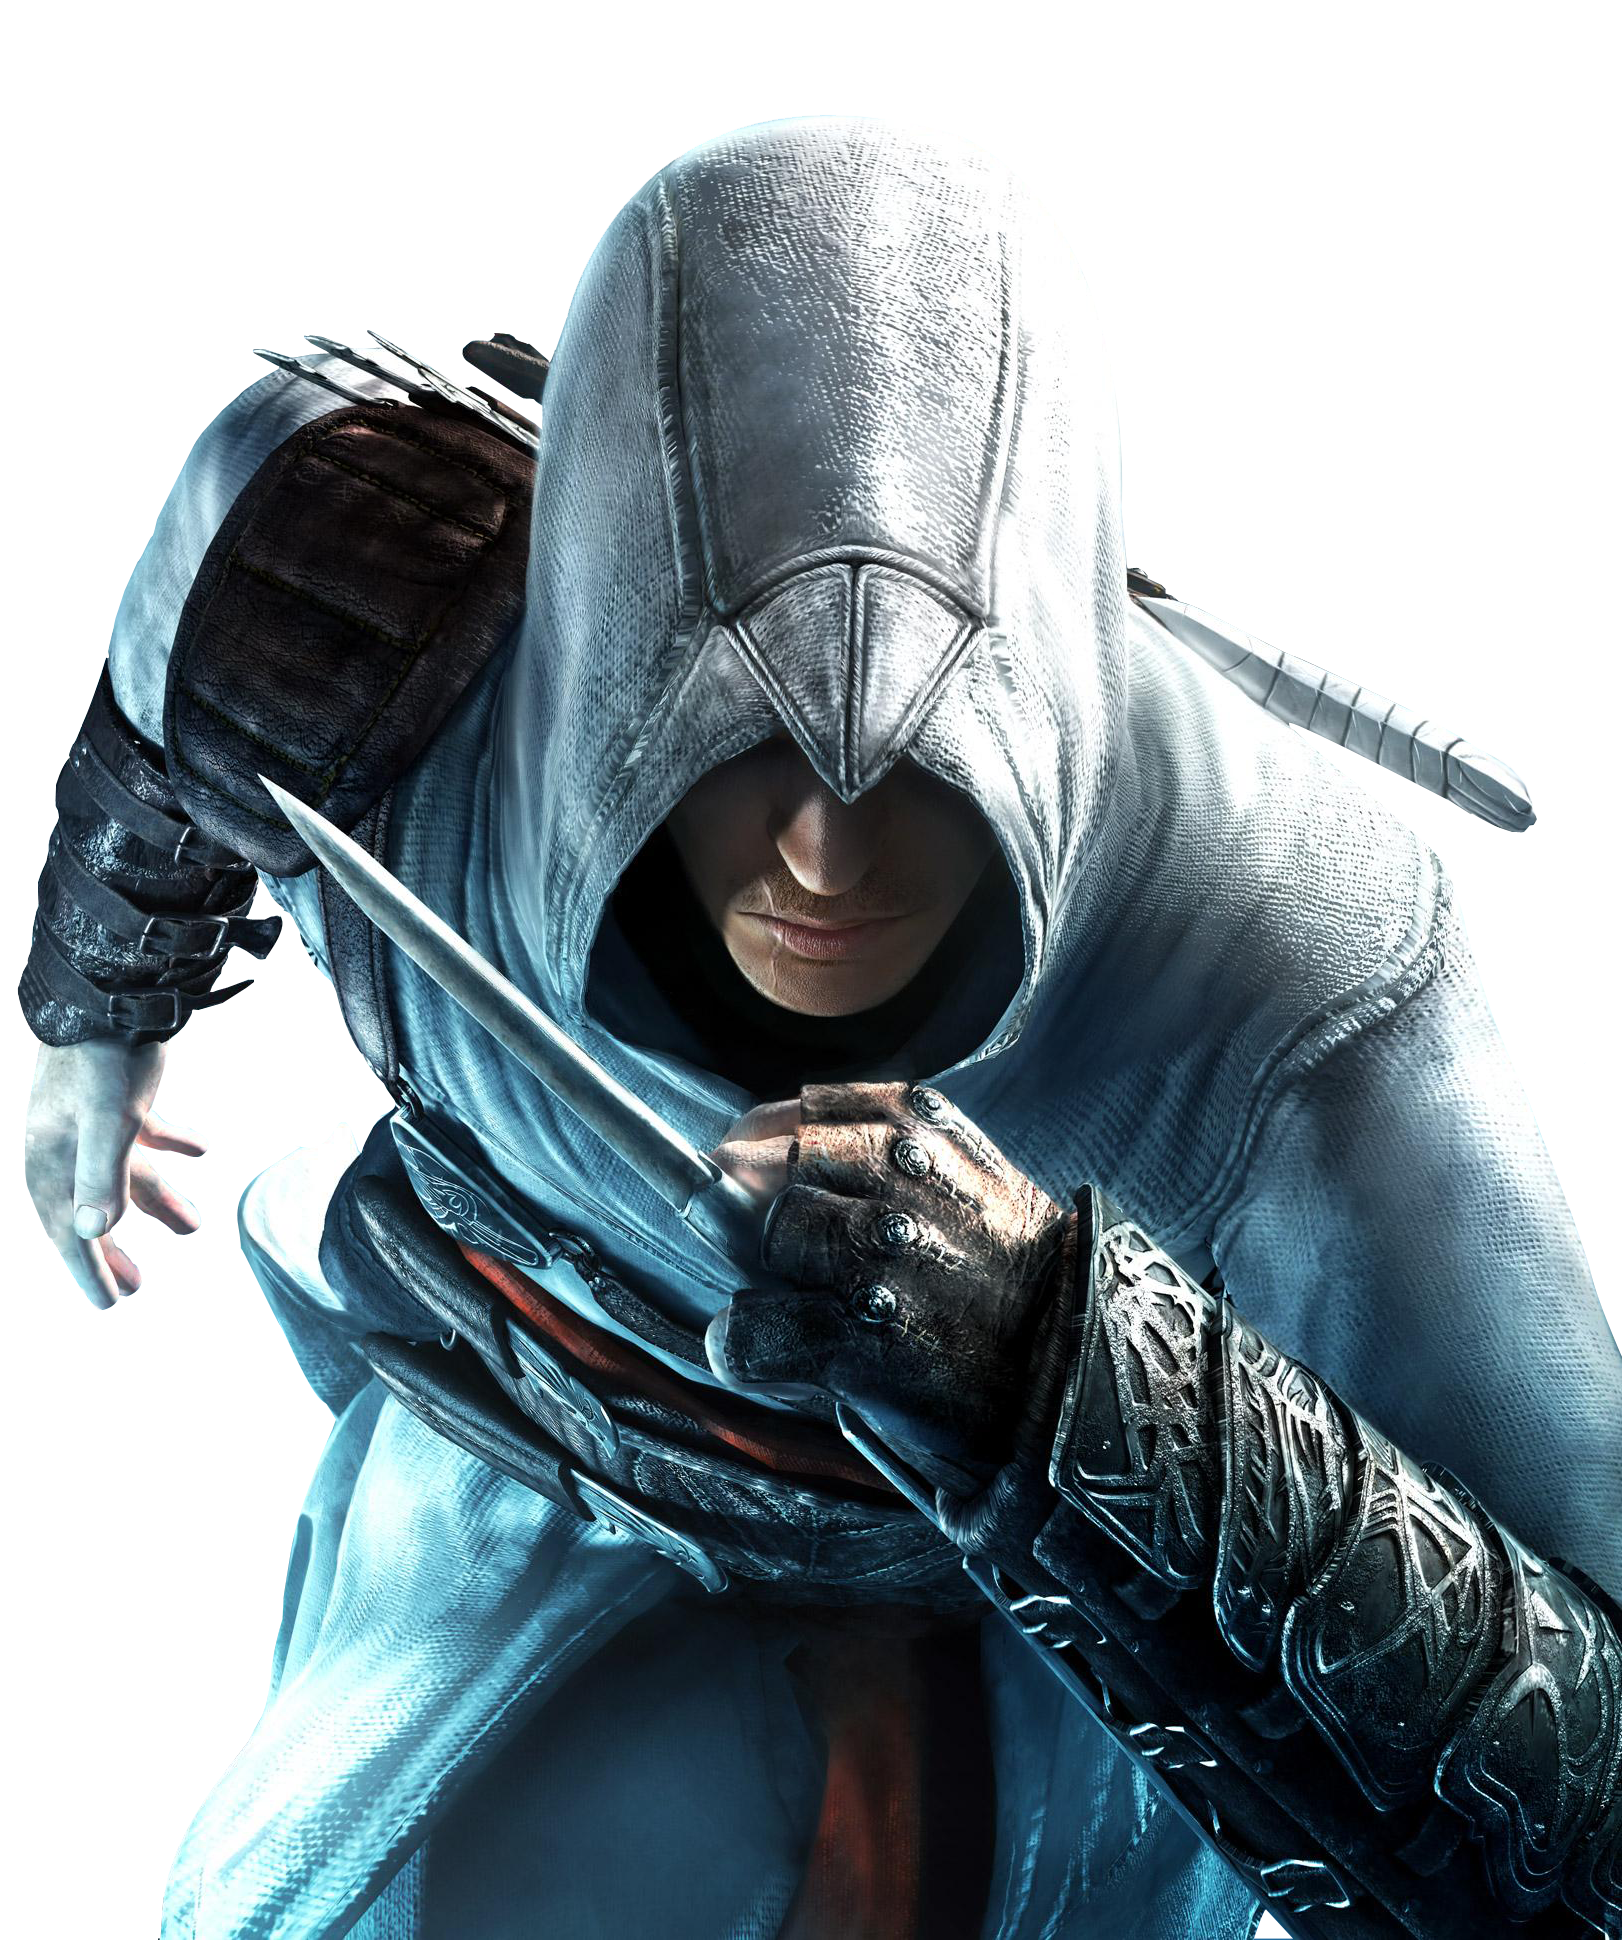 Free Download Assassins Creed Altair Wallpaper Pin It 1622x1940 For Your Desktop Mobile Tablet Explore 73 Altair Wallpaper Assassin S Creed Altair Wallpaper